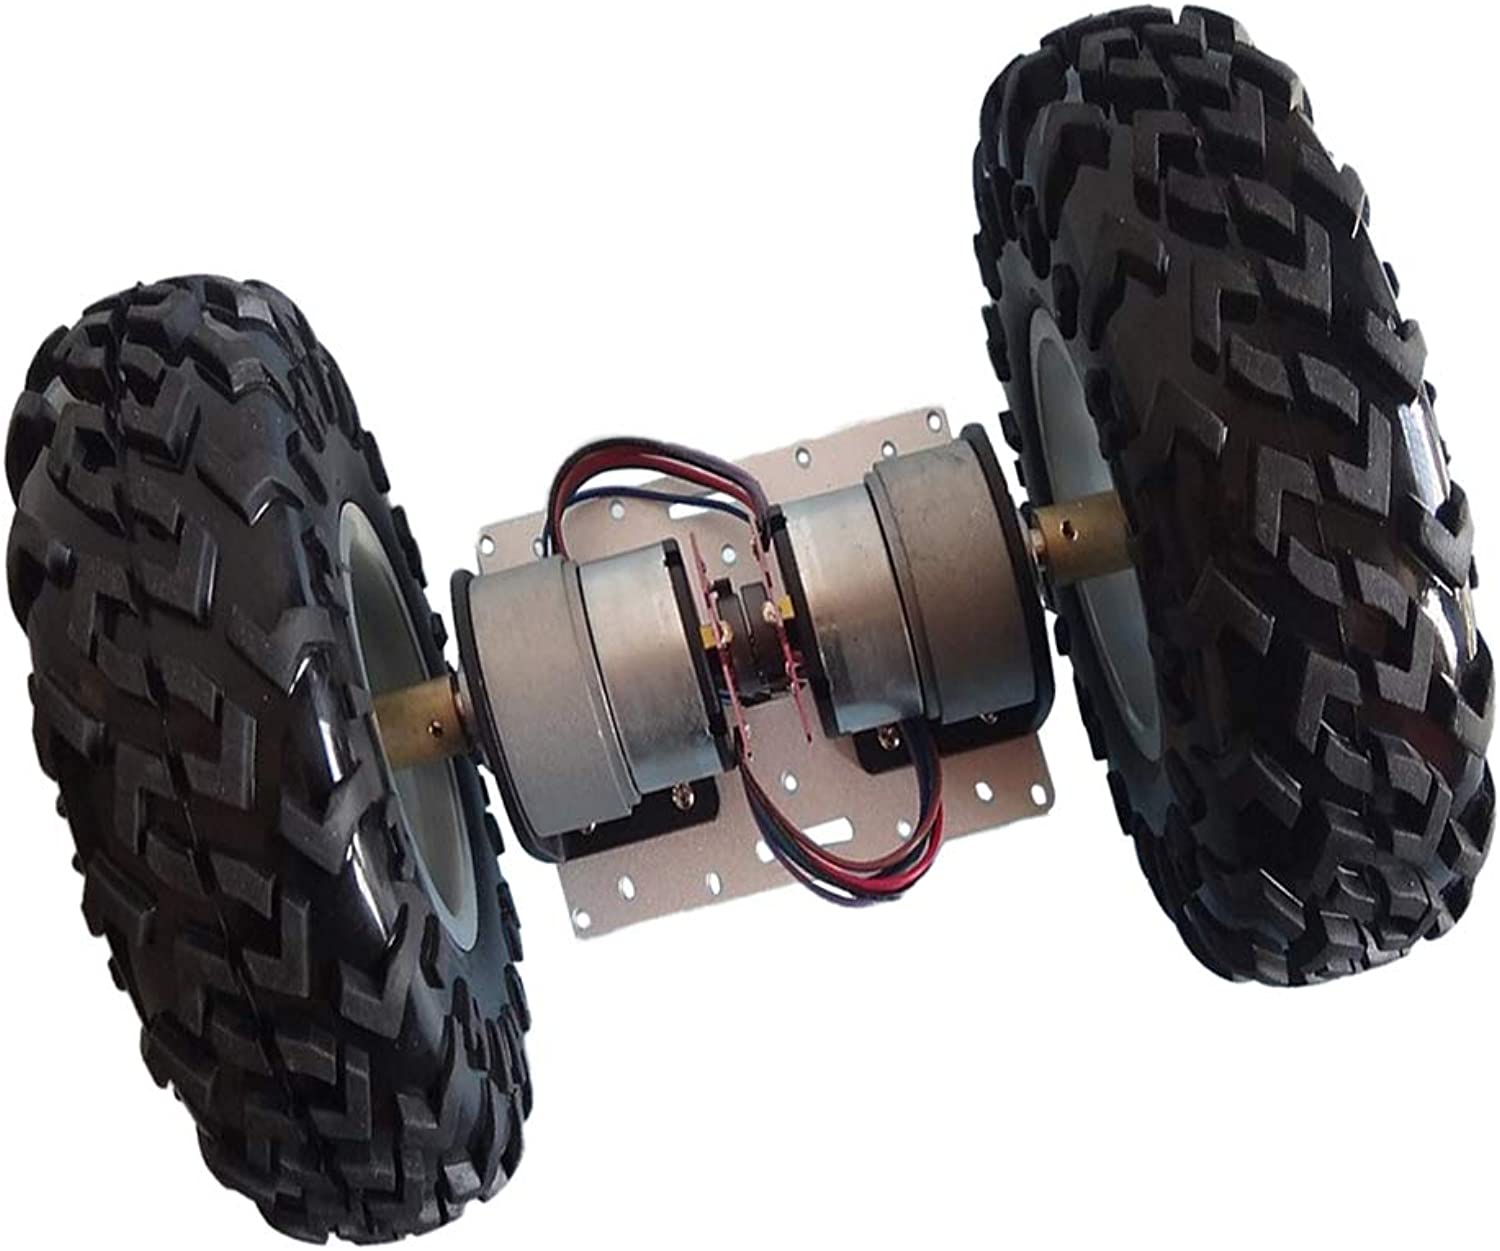 Baosity Smart Robot Car Chassis Kit with Motors, Encoder for Arduino DIY Learner(2WD)